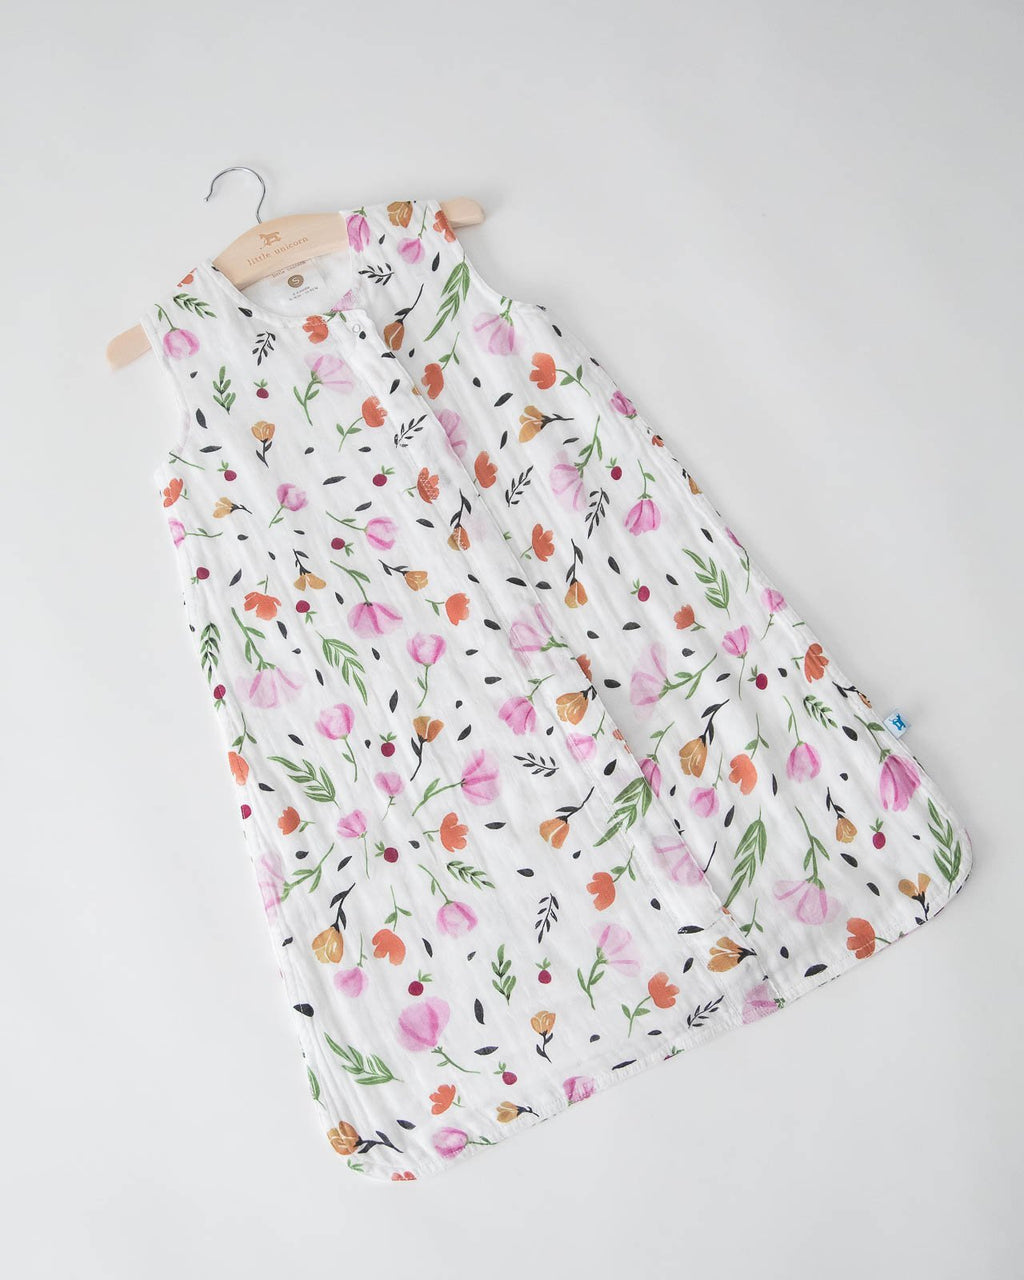 Little Unicorn Cotton Muslin Sleep Bag Medium - Berry Bloom